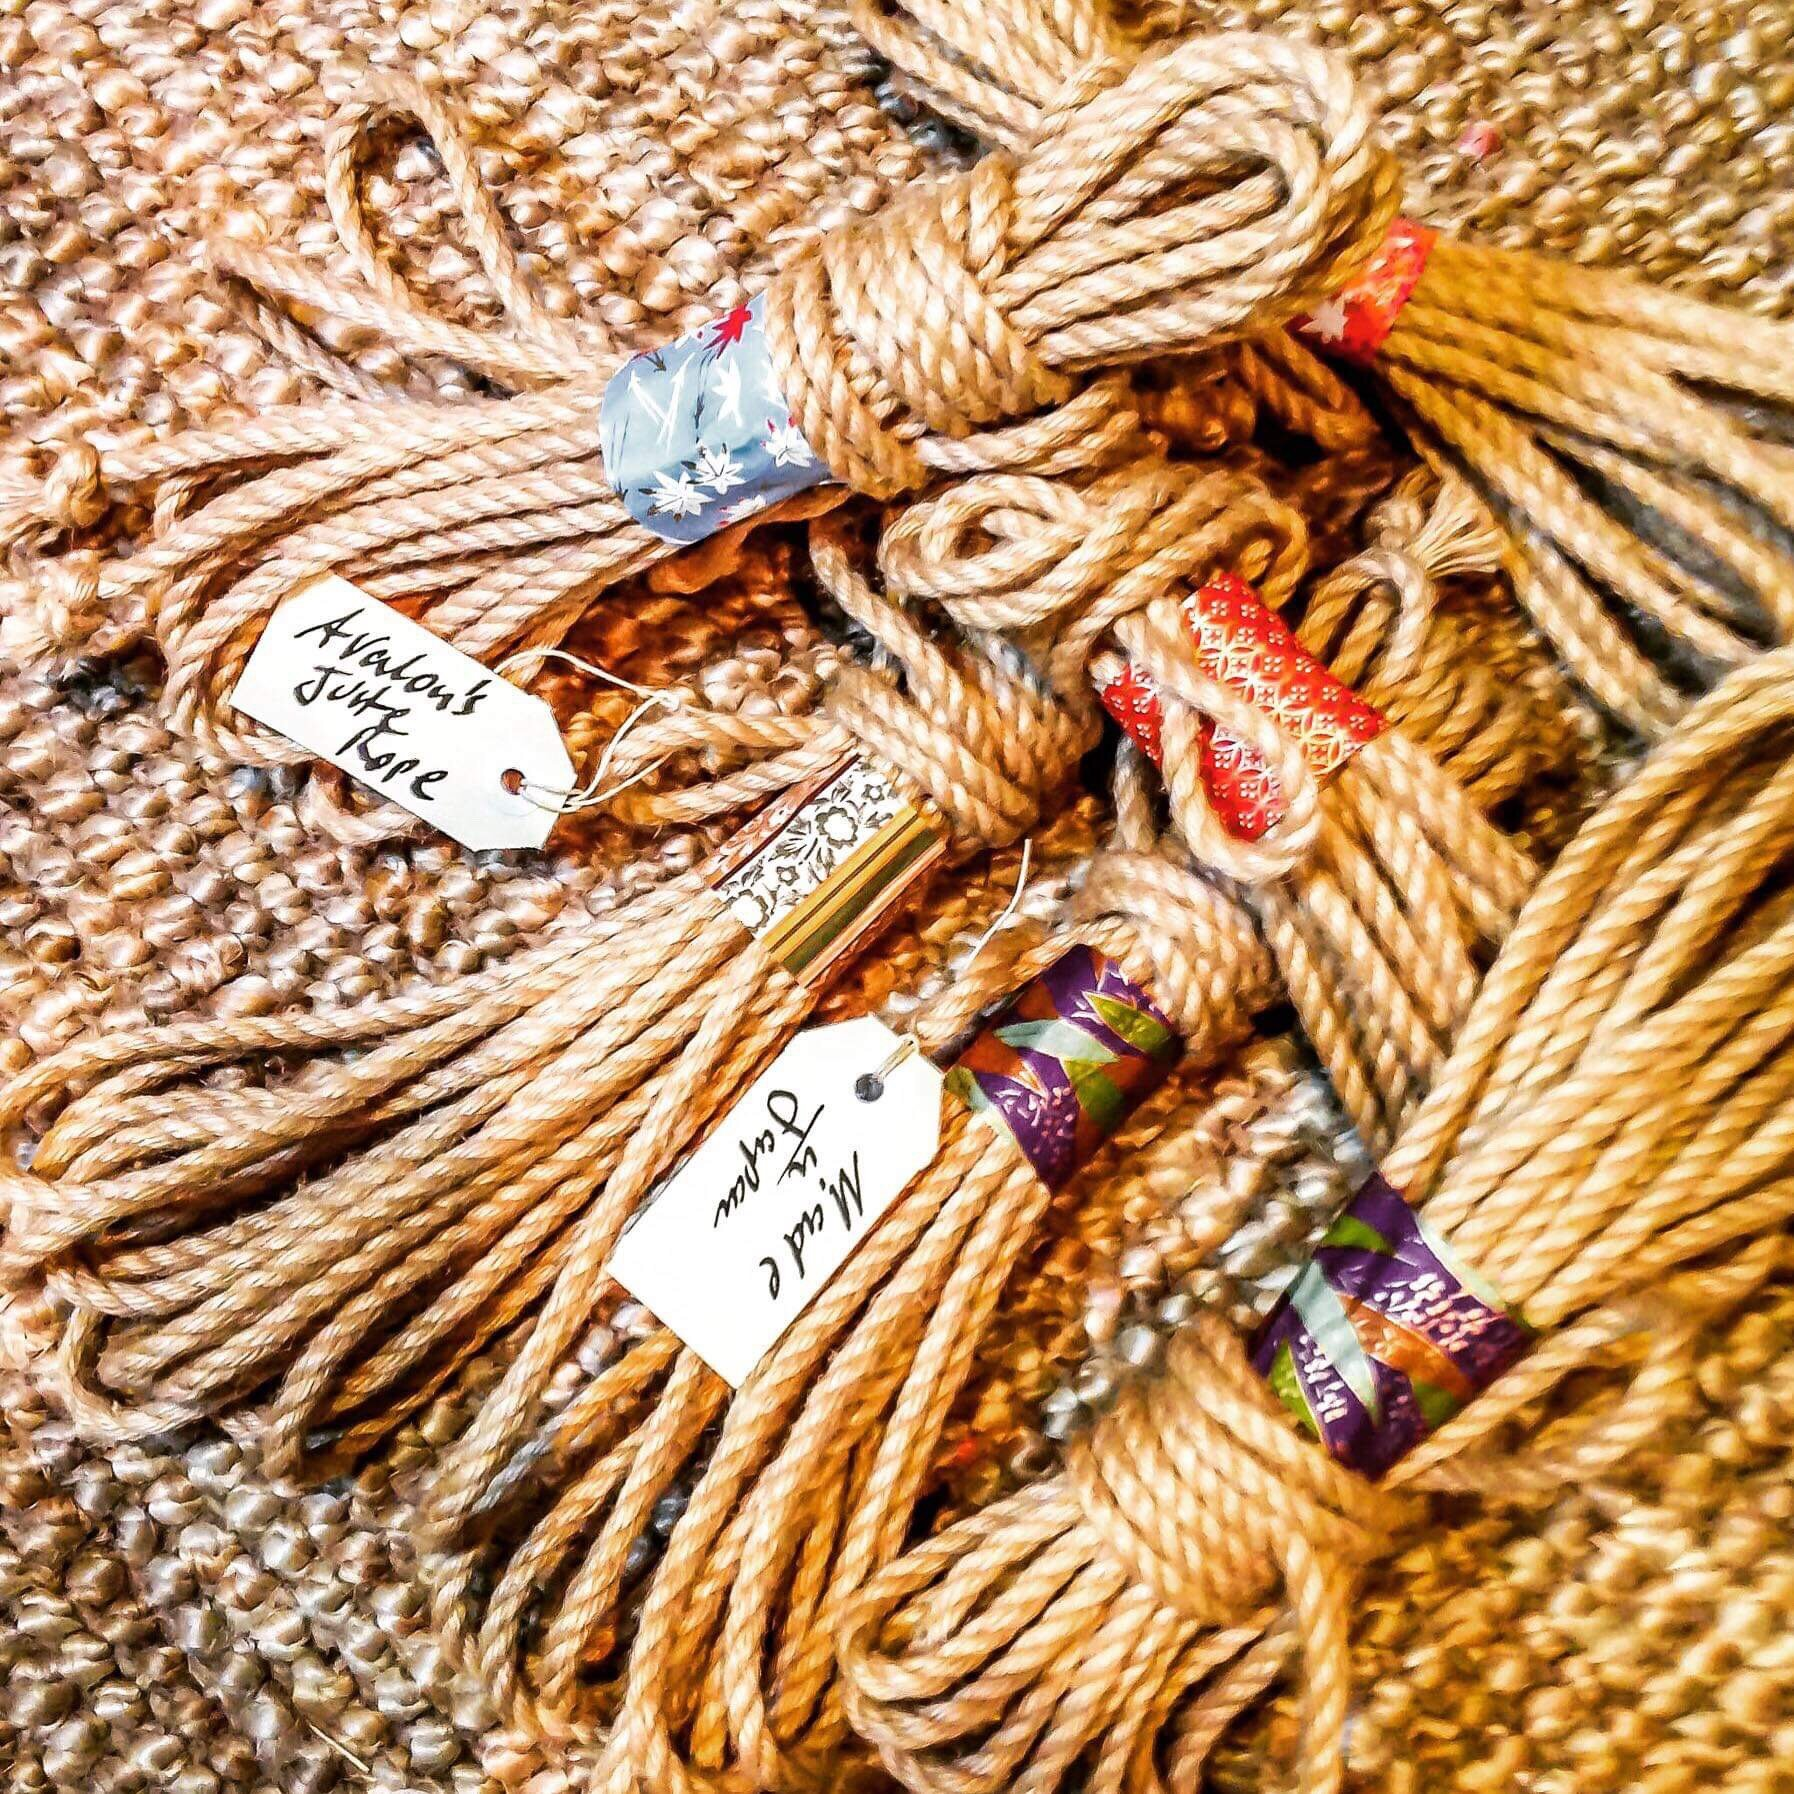 Avalon's Rope Dojo - Melbourne, Australia6 mm, Camilla-oil, bees-wax mix treated, natural and colored, Asanawa jute ropeOrder by sending a message via their Facebook page.